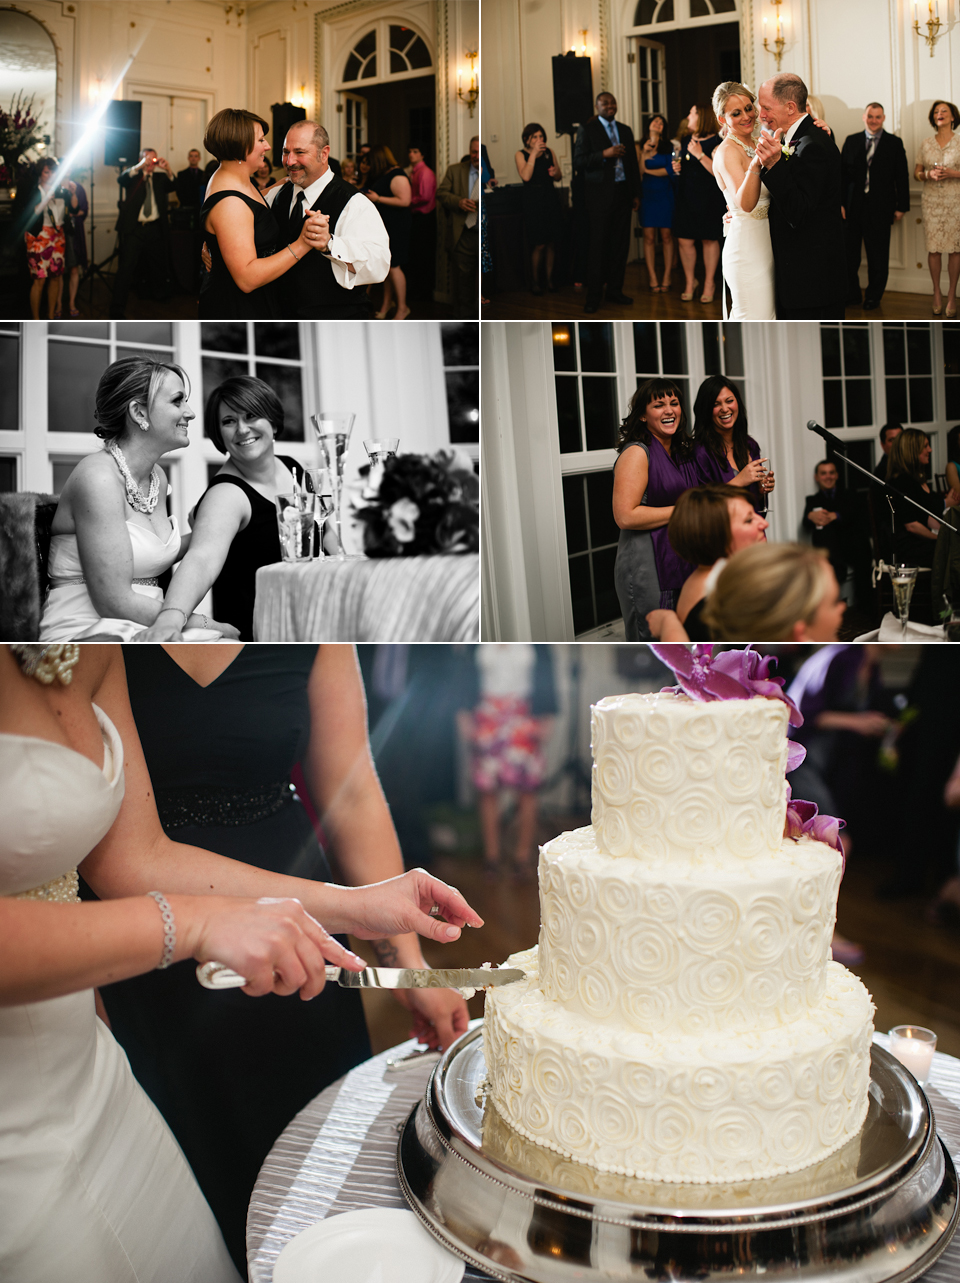 dances, toasts, cake cutting!